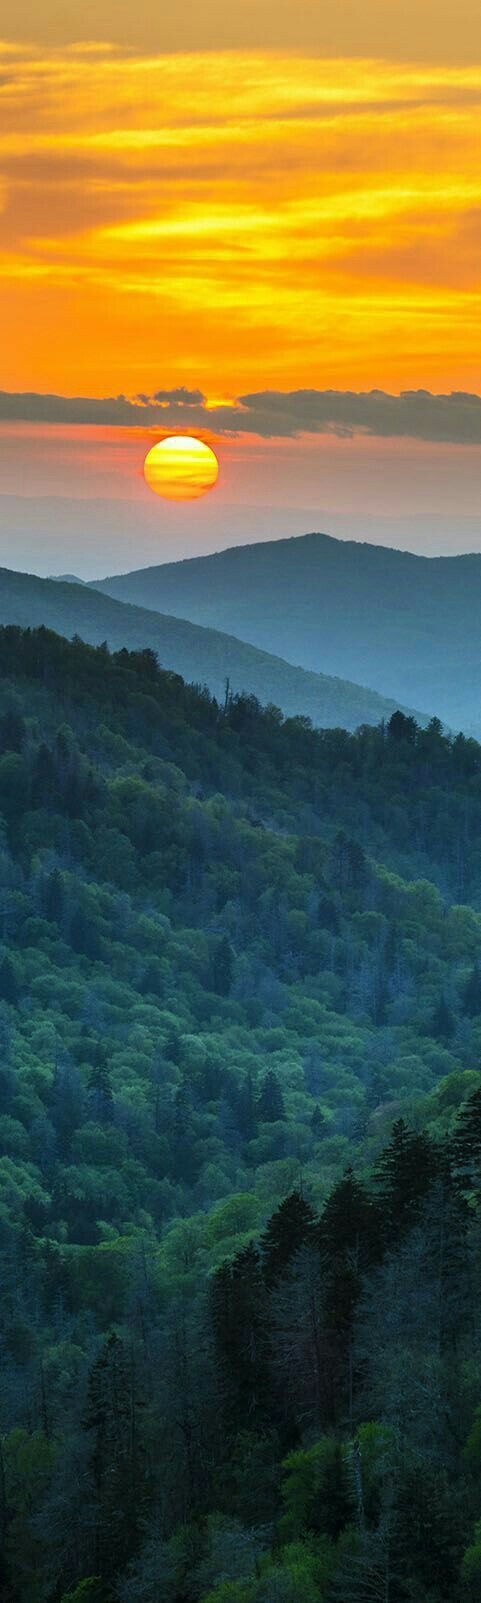 Sunrise in the Smoky Mountains, Tennessee. - from visit my smokies.com